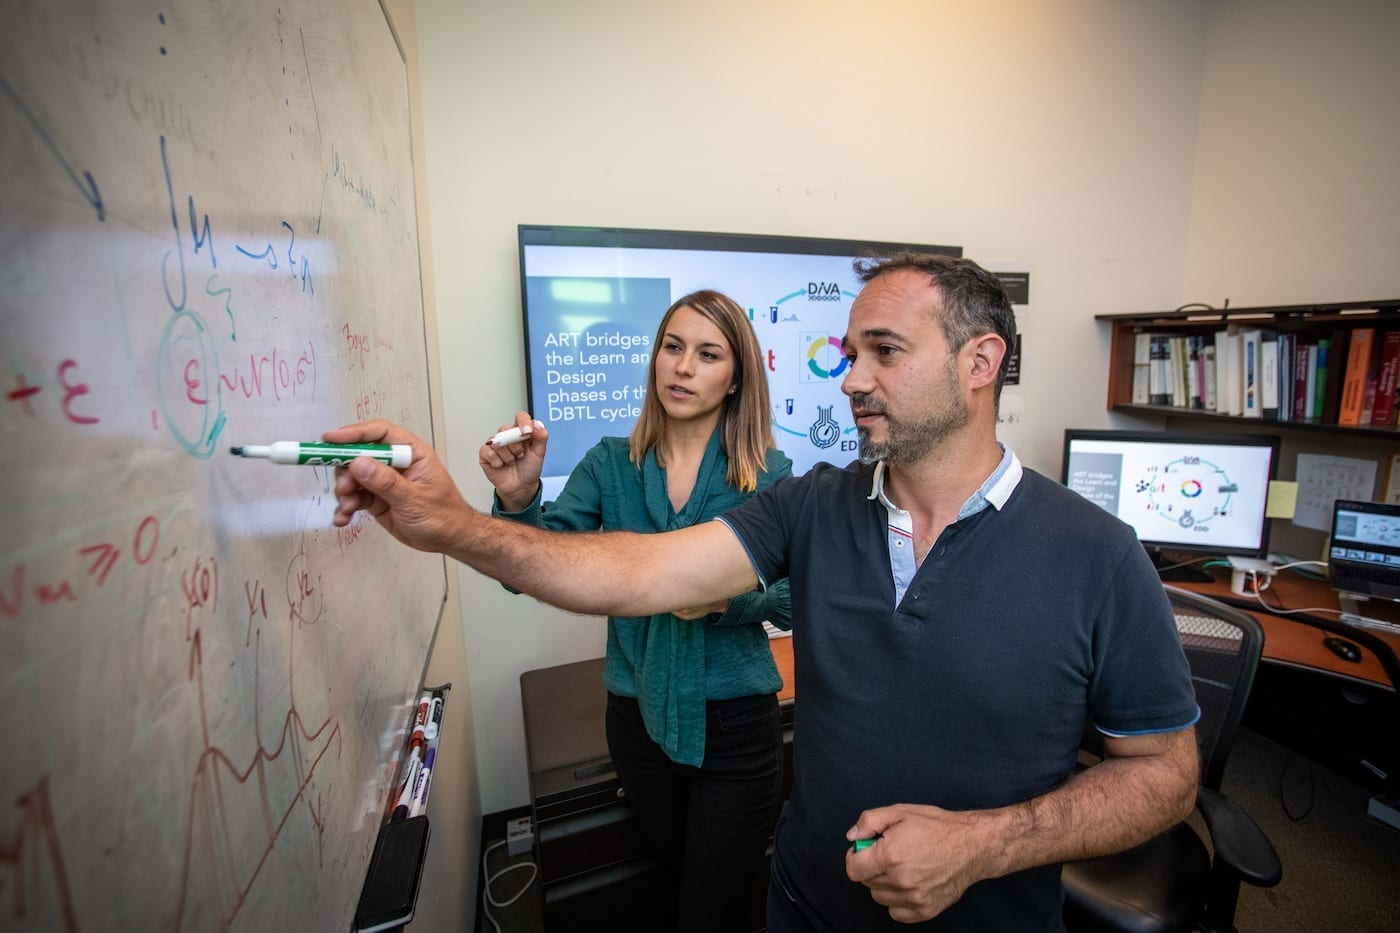 Tijana Radivojevic (left) and Hector Garcia Martin work on mechanical and statistical modeling, data visualizations and metabolic maps at the Agile BioFoundry. 08/09/2019, Emeryville, California